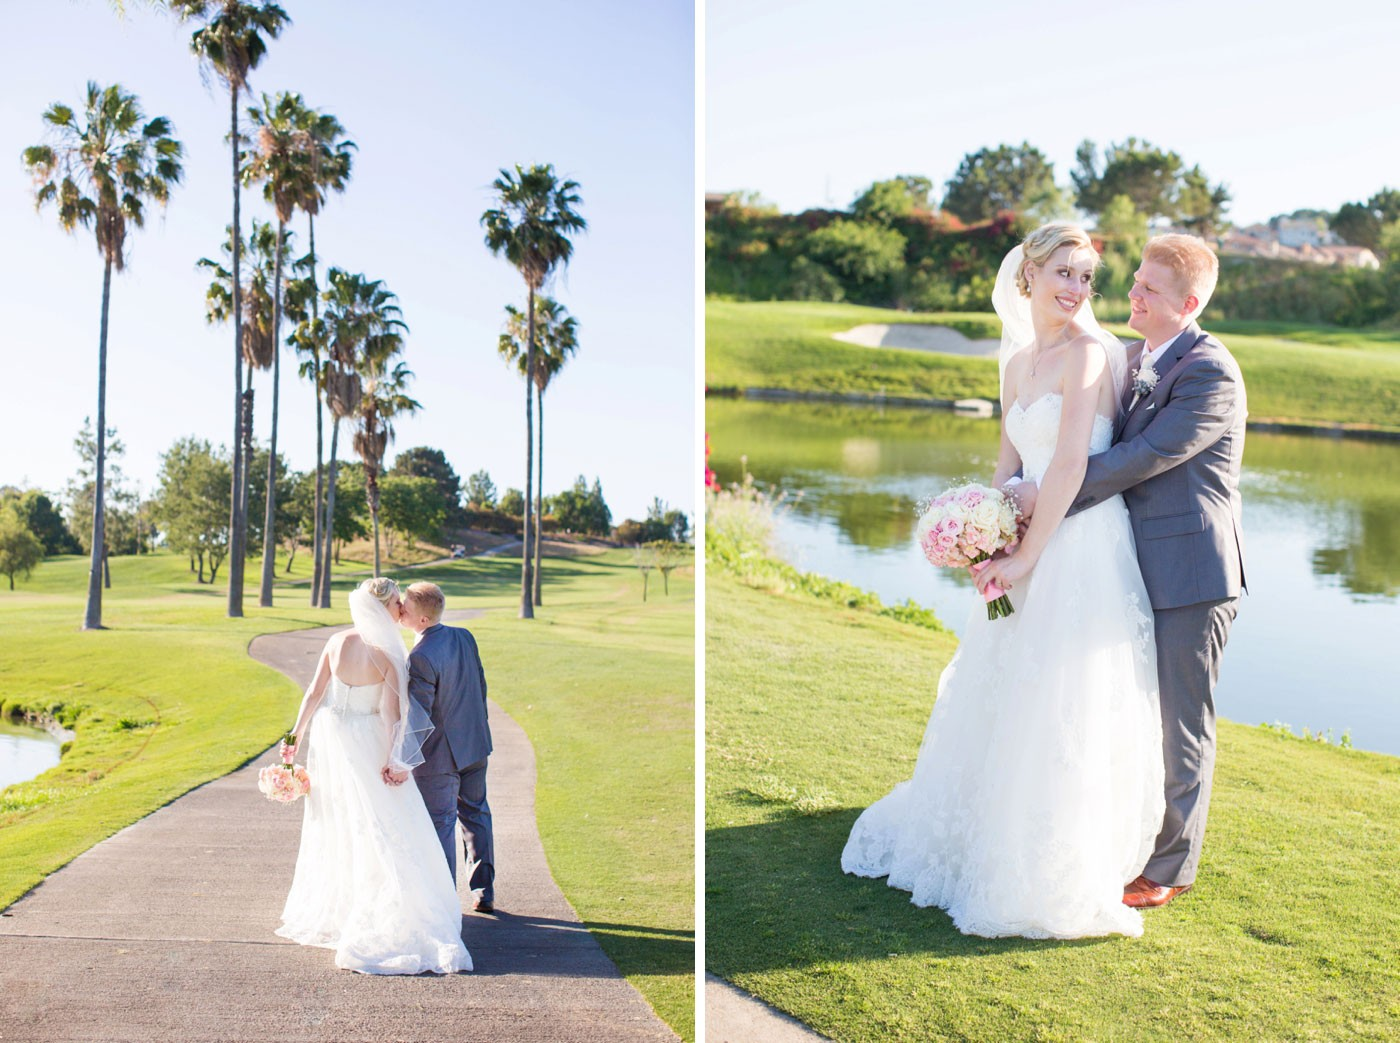 bryan_noelle_aliso_viejo_country_club_wedding_0022